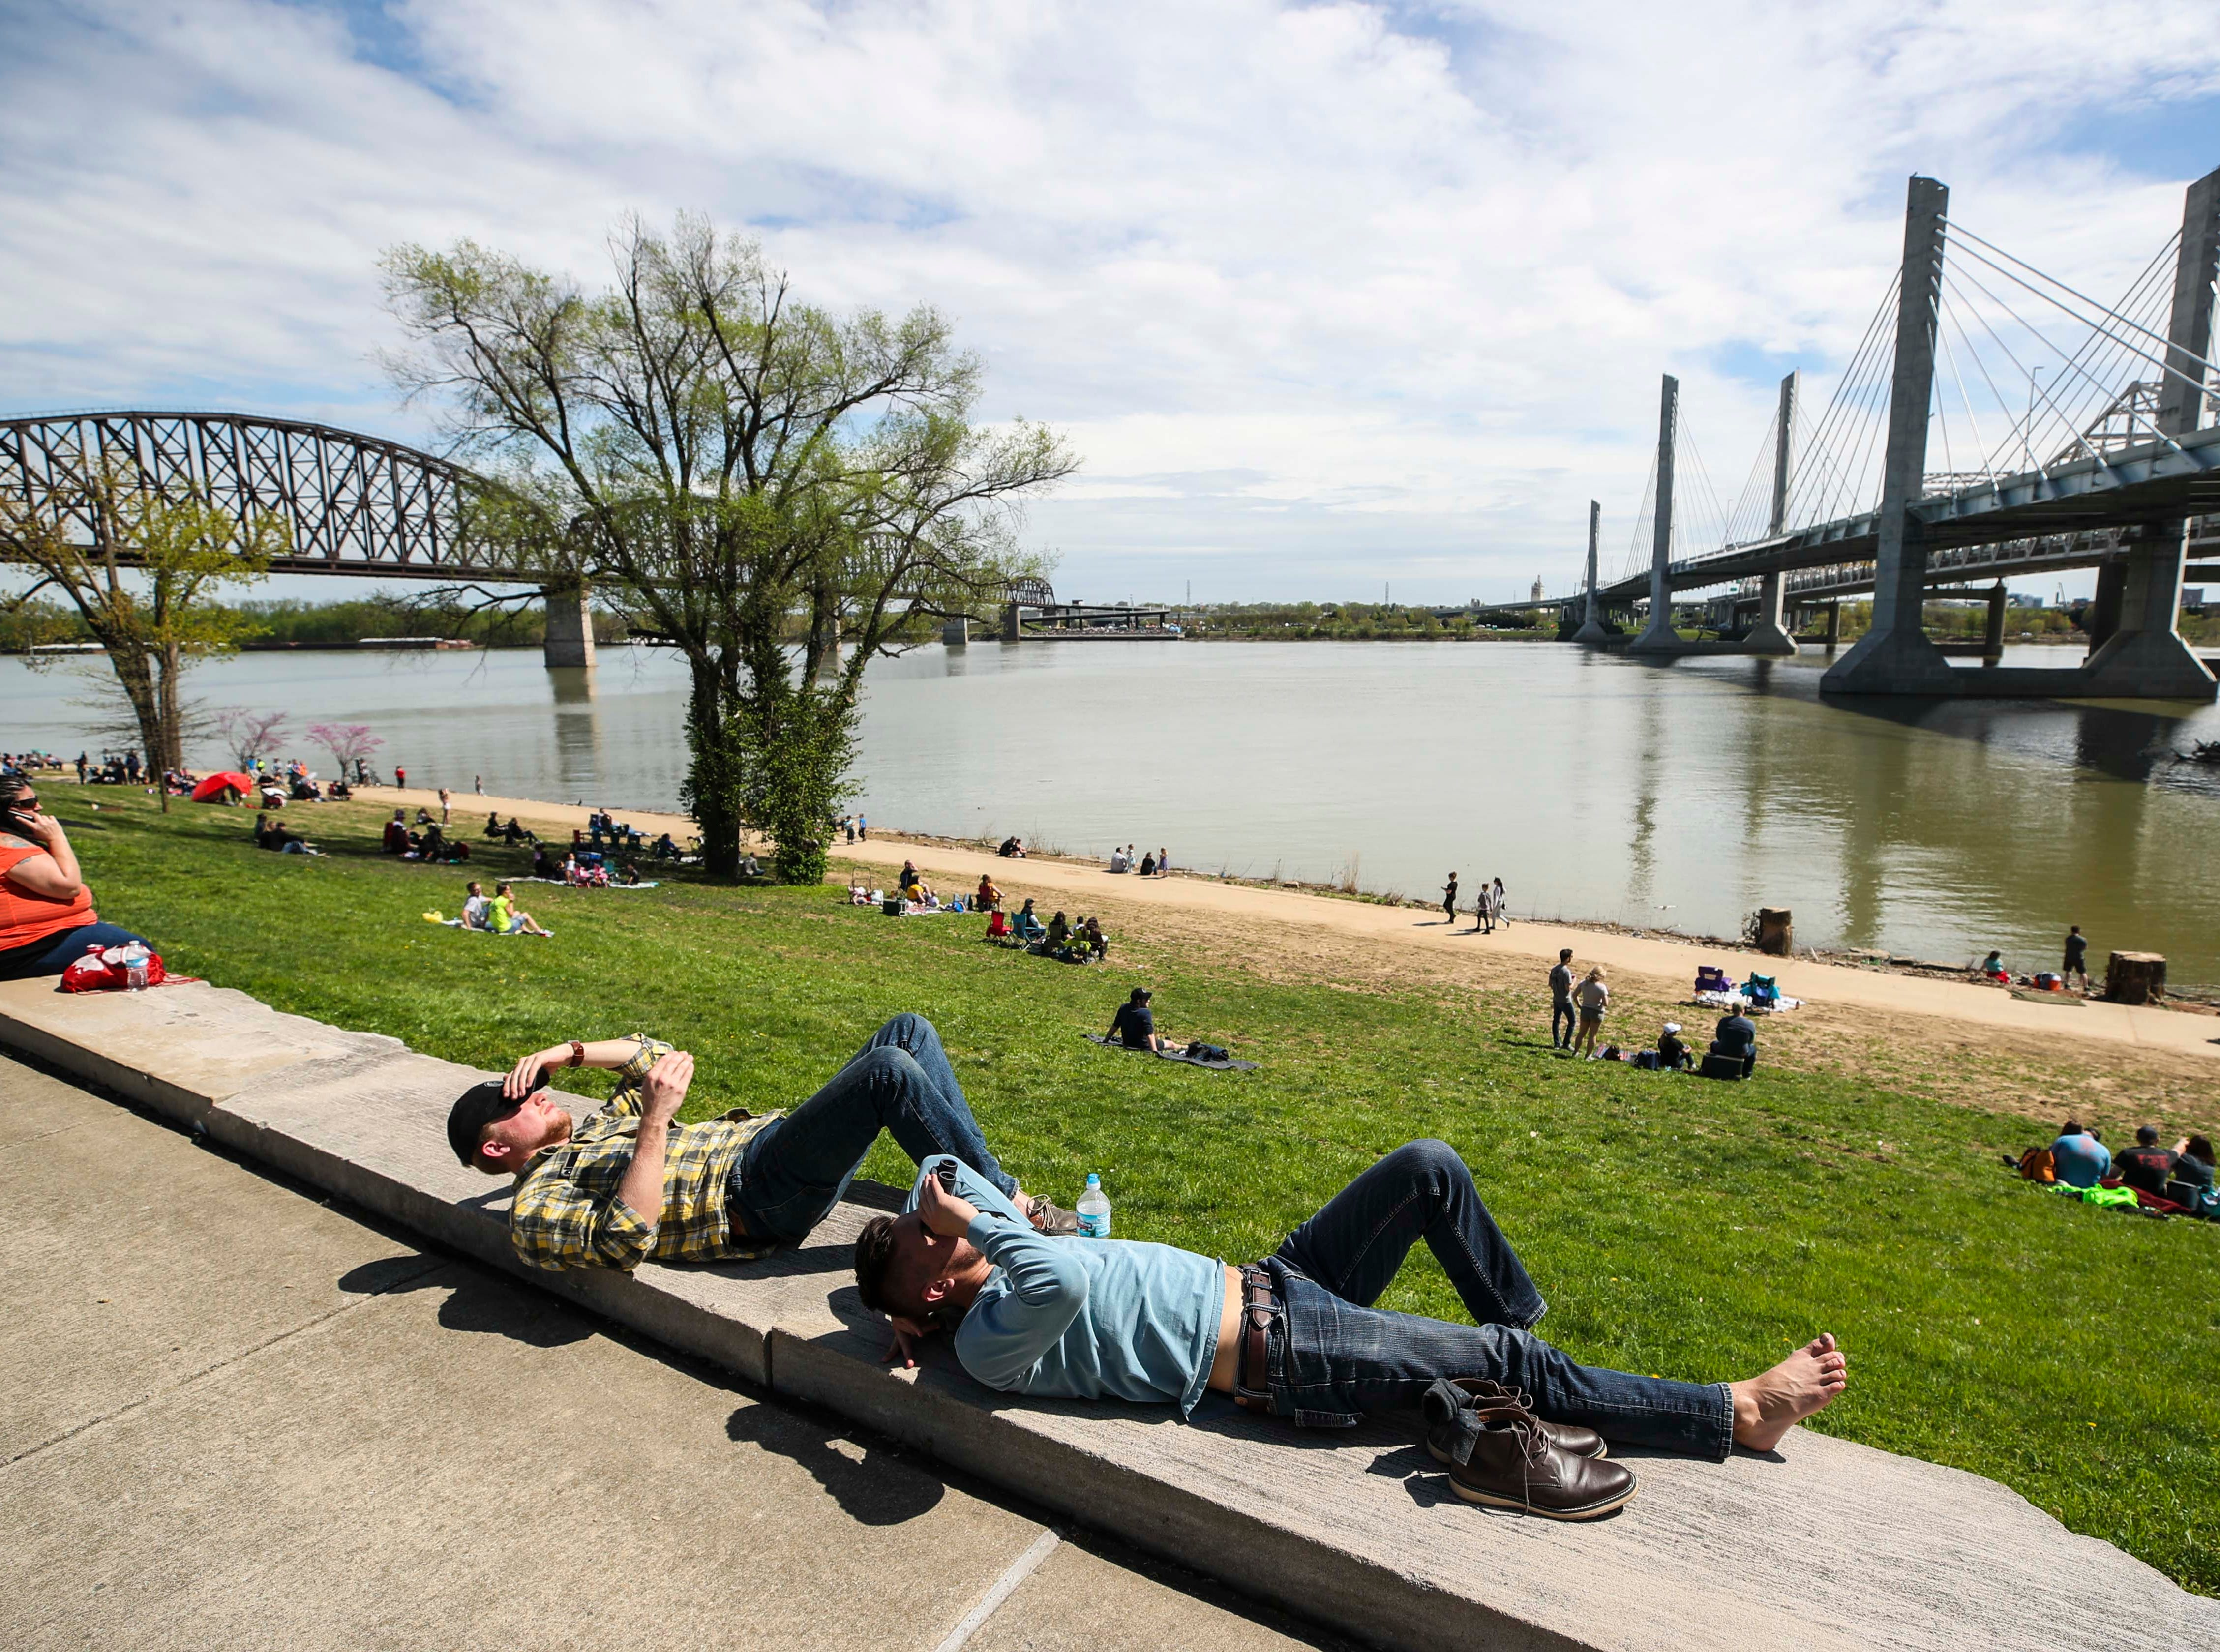 Scenes from the Indiana riverfront during 2019 Thunder Over Louisville. April 13, 2019